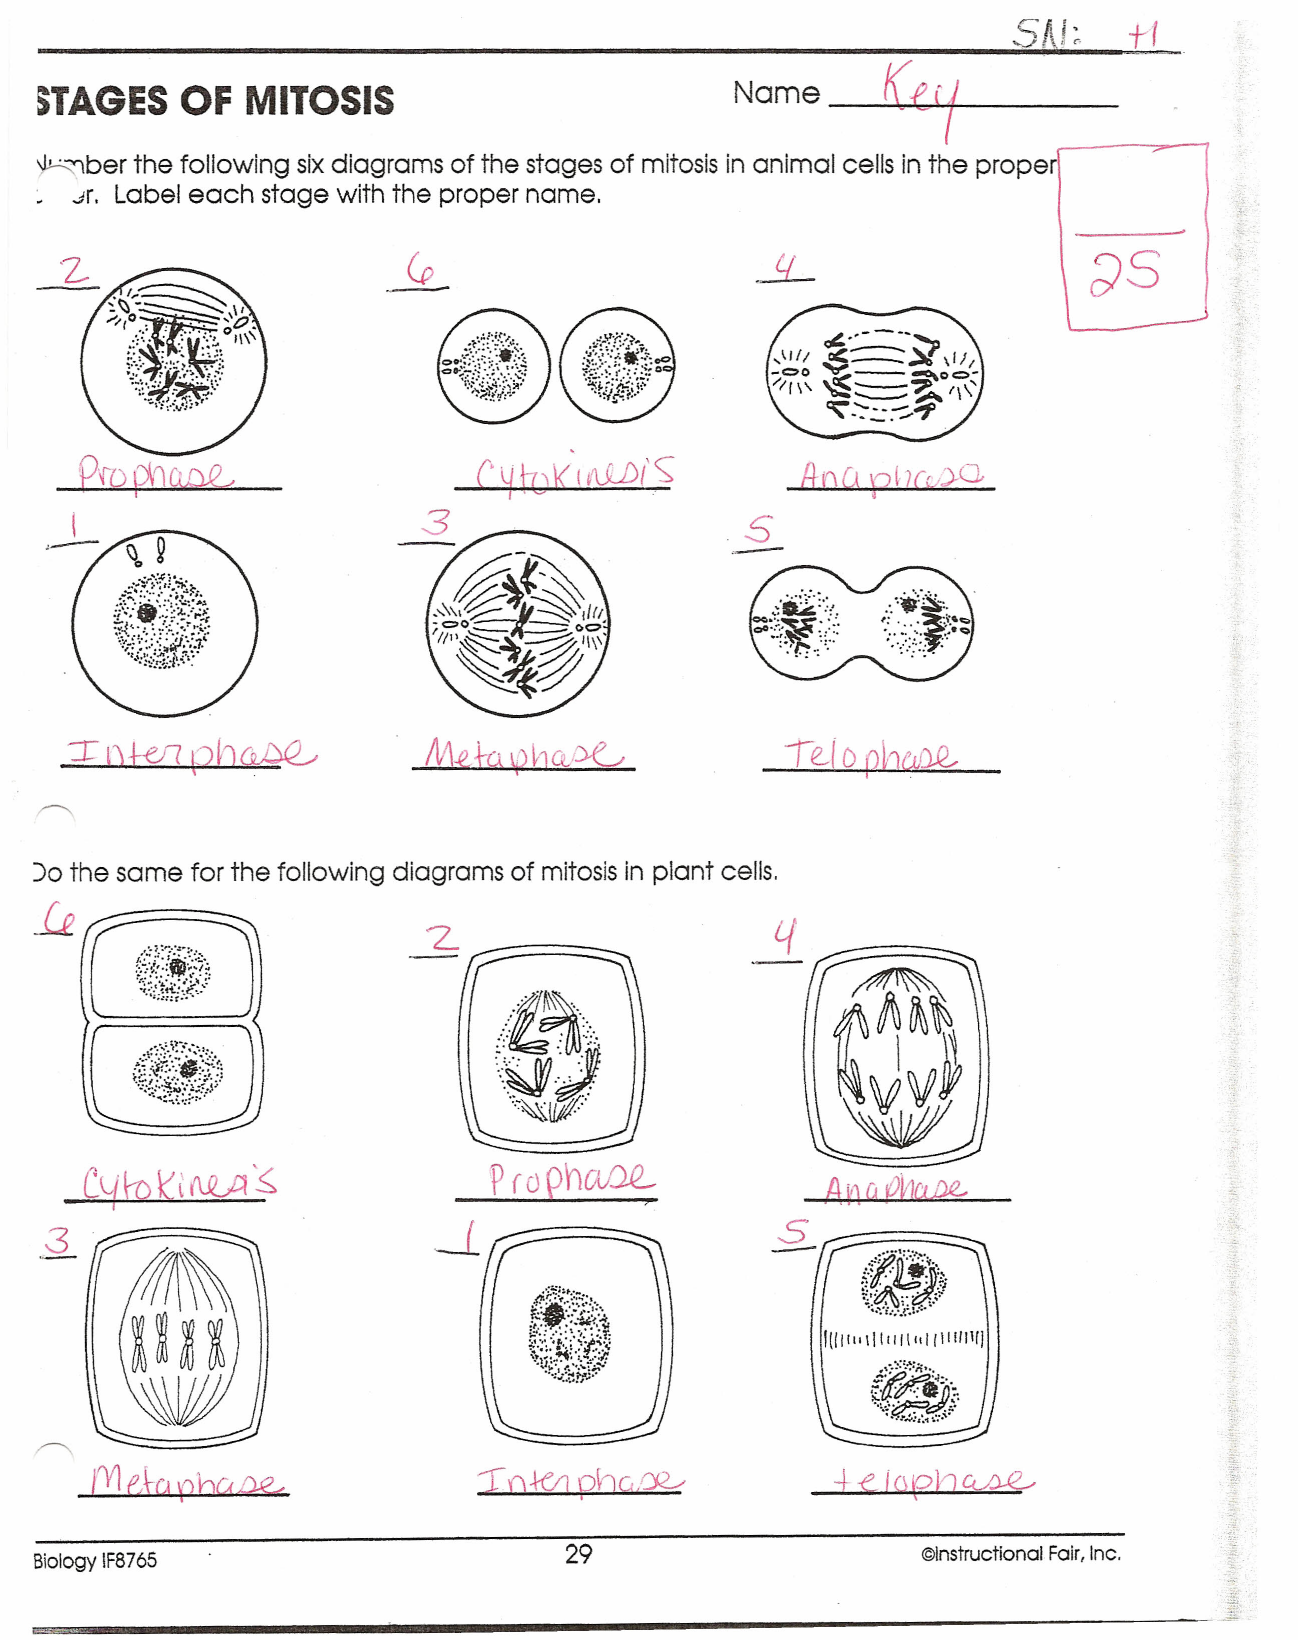 Worksheets Mitosis Phases Worksheet 013396067 1 74019b9a2c355f42756190f7e78de852 png